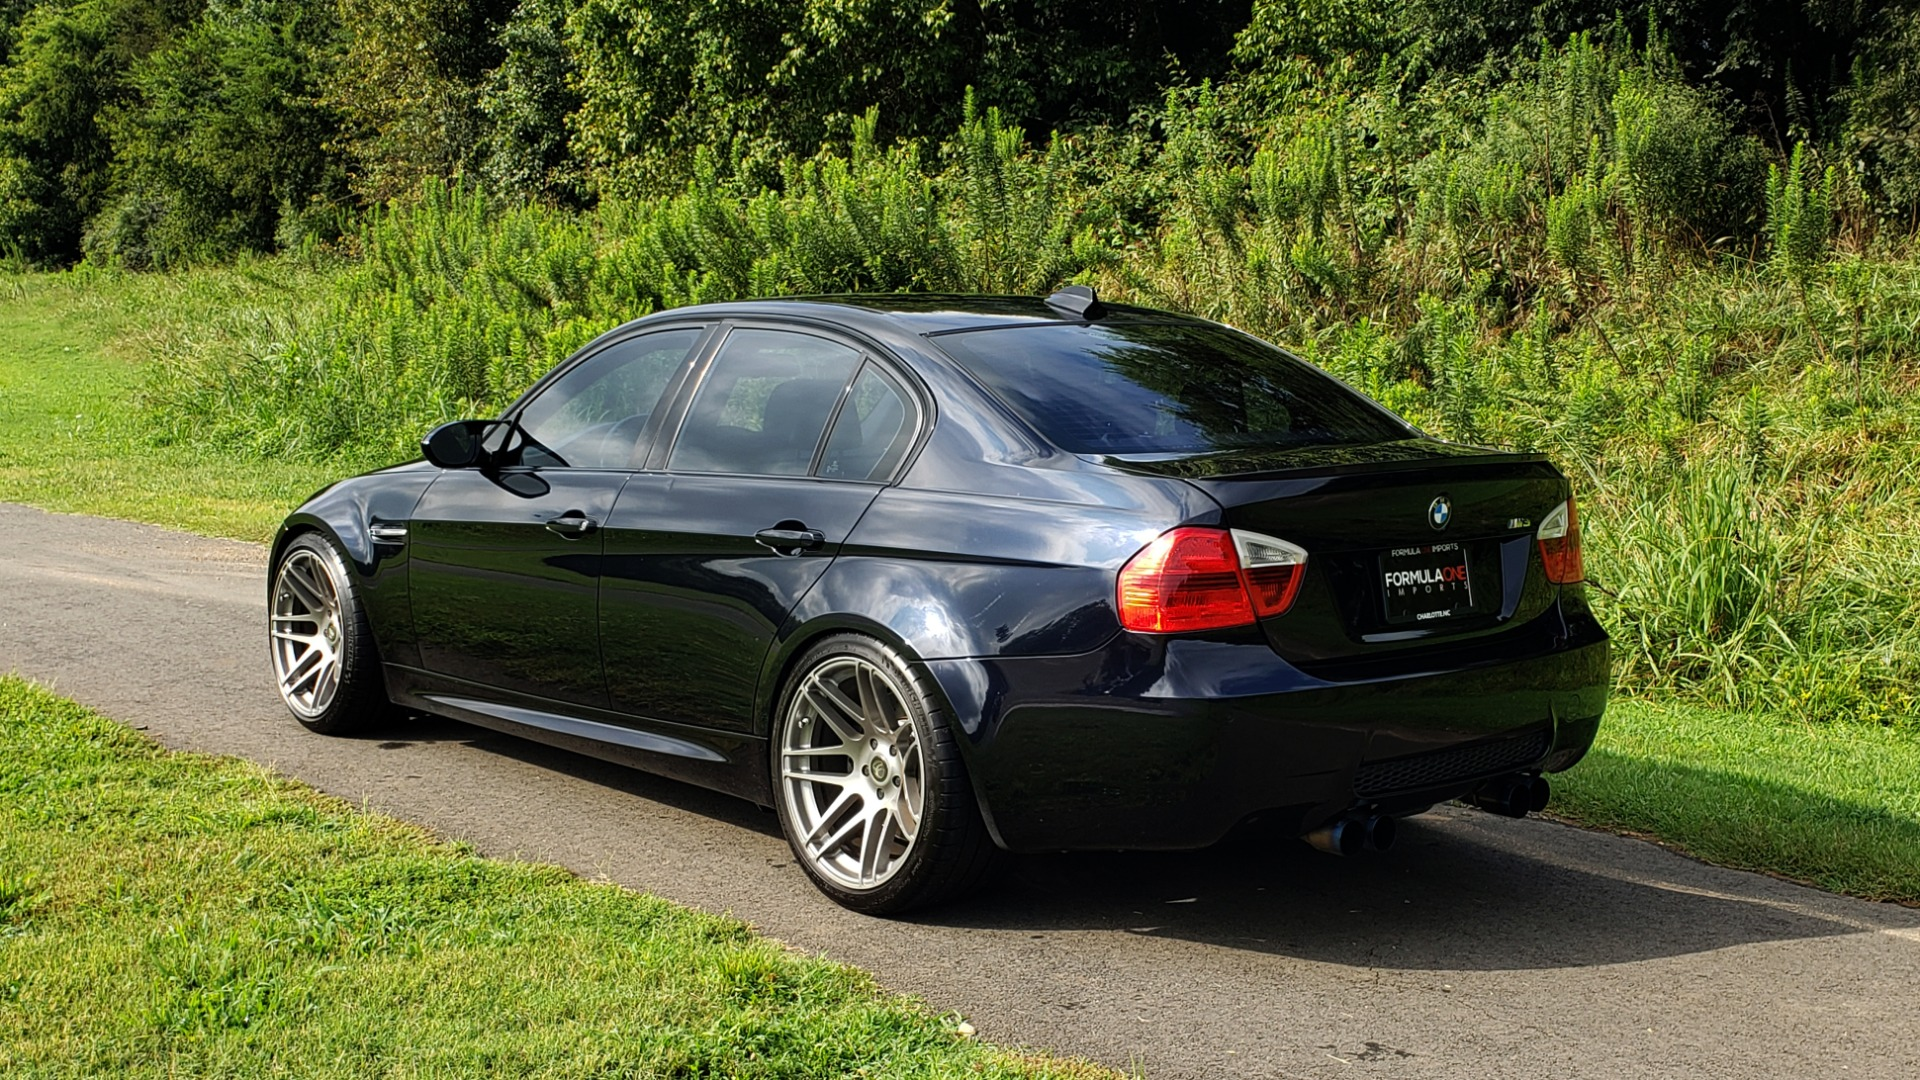 Used 2008 BMW 3 SERIES M3 PREMIUM / TECH / PDC / SUNROOF / 4.0L V8 / 6-SPD MANUAL for sale Sold at Formula Imports in Charlotte NC 28227 6